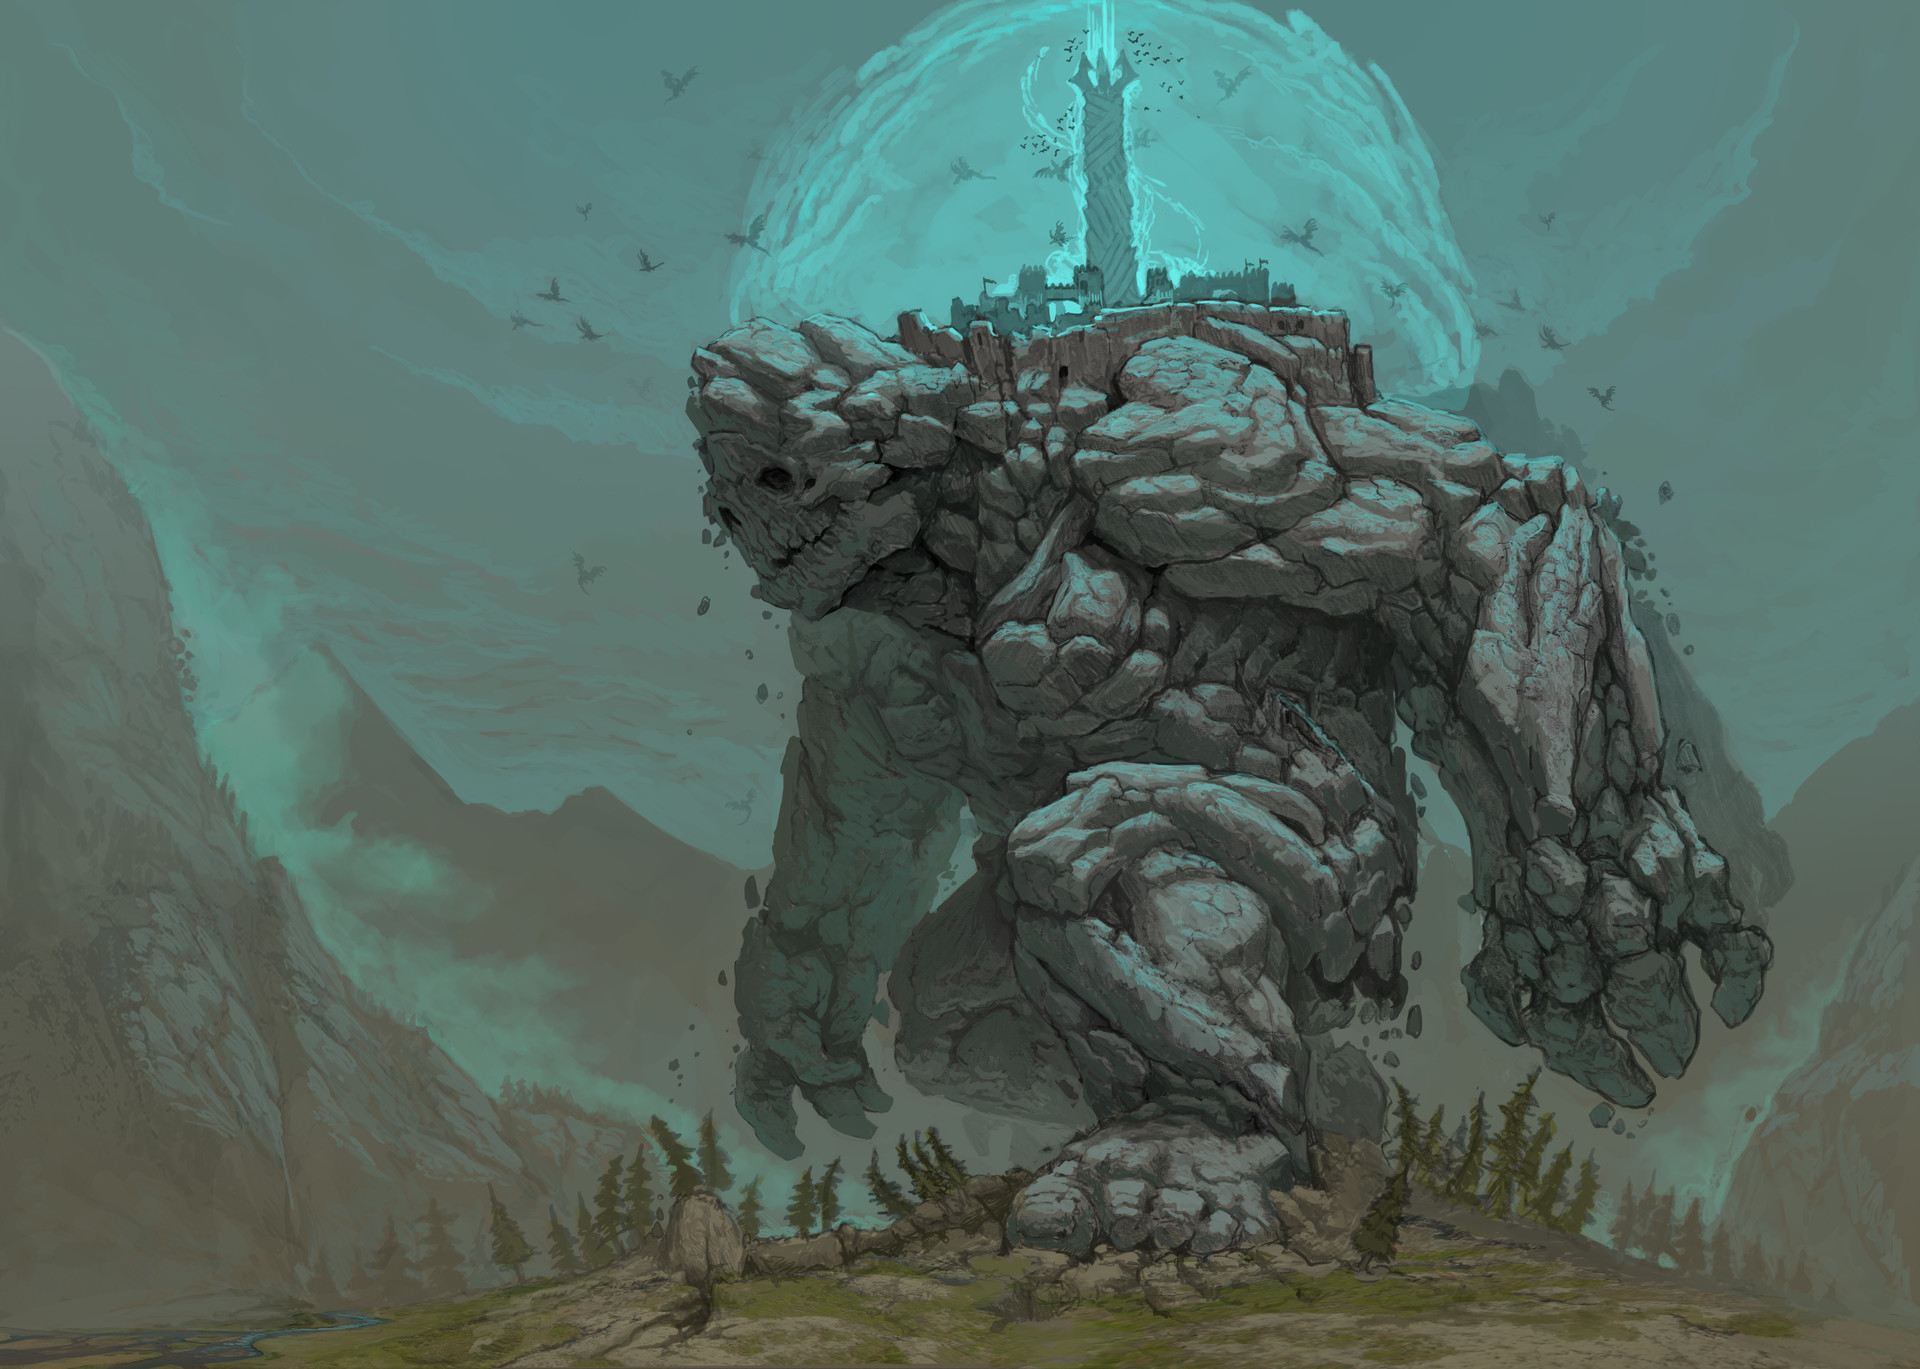 Artstation Vecna Crit Role Fanart Stephen Oakley I've had to find critical role fanart by searching, super pleased to find it on the front page! vecna crit role fanart stephen oakley